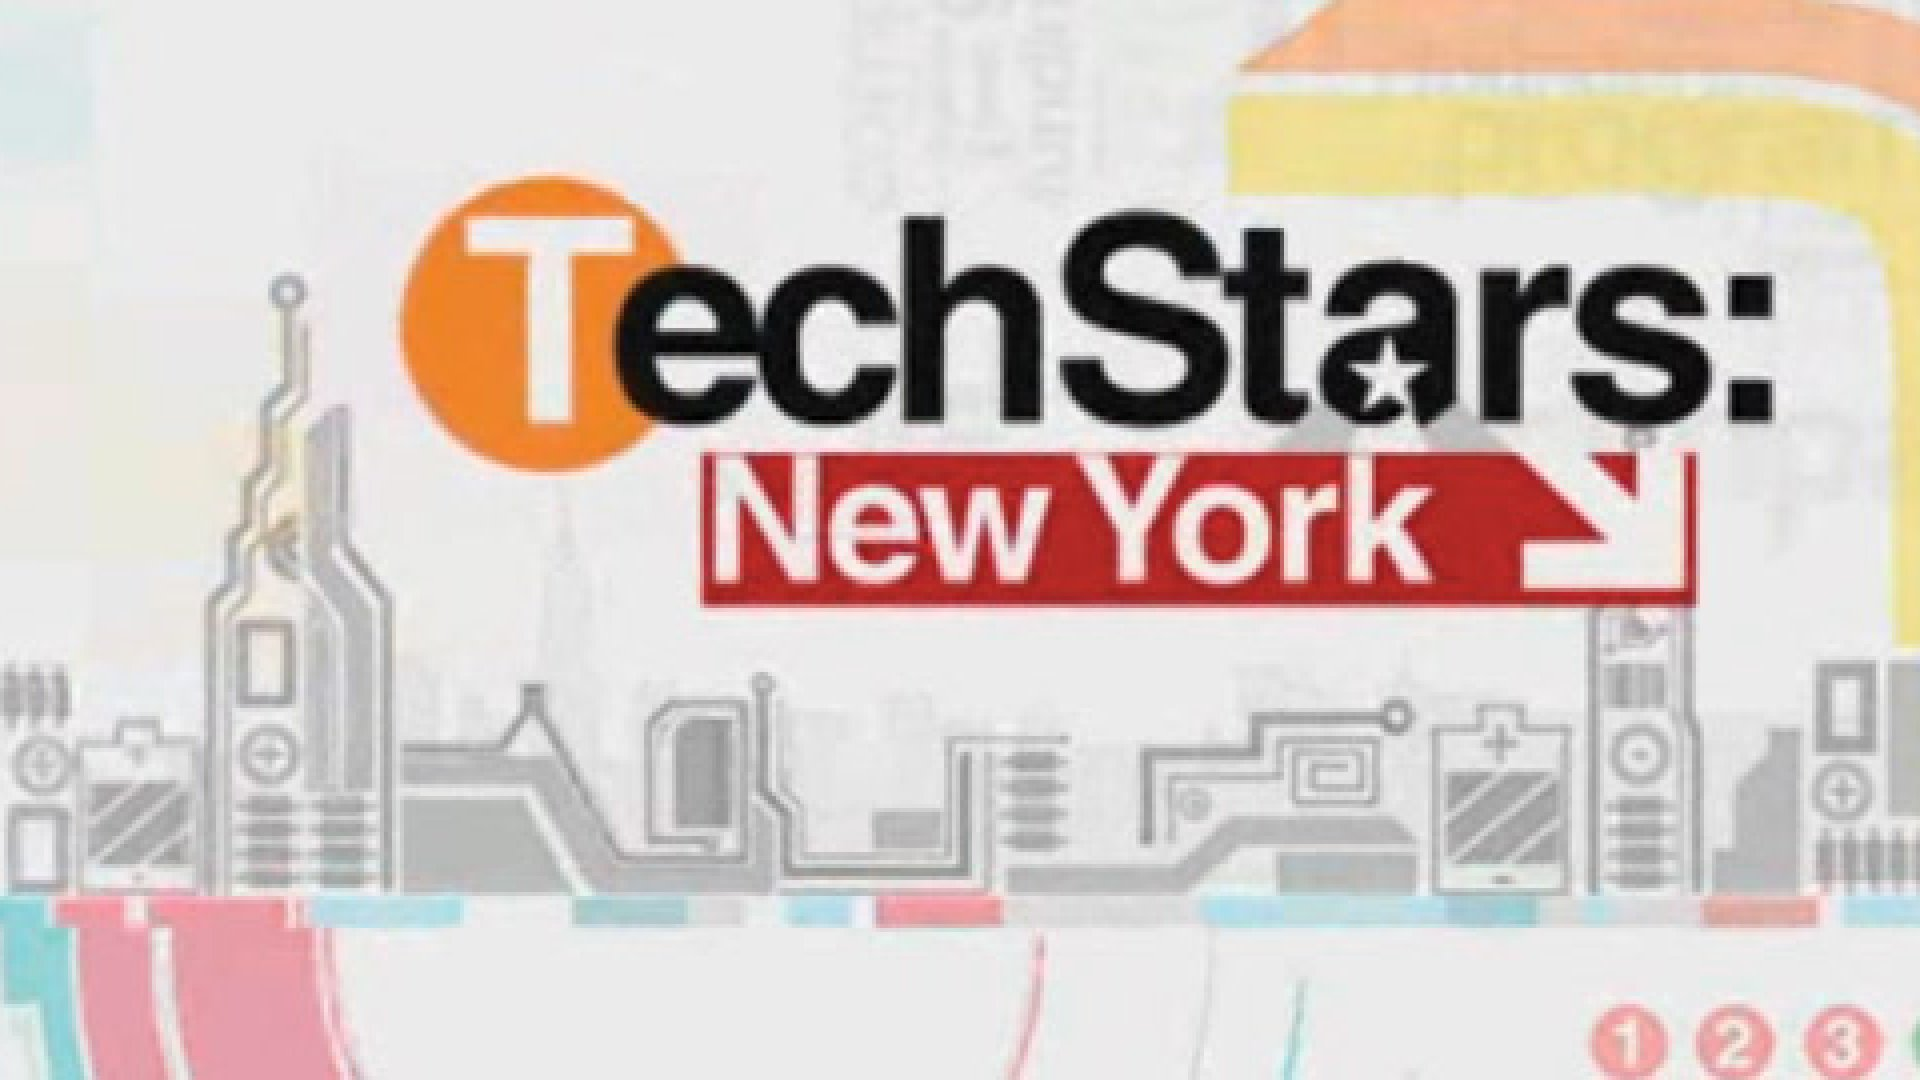 A new documentary television series will profile 10 start-ups as they navigate the rough and tumble world of entrepreneurship in New York City.